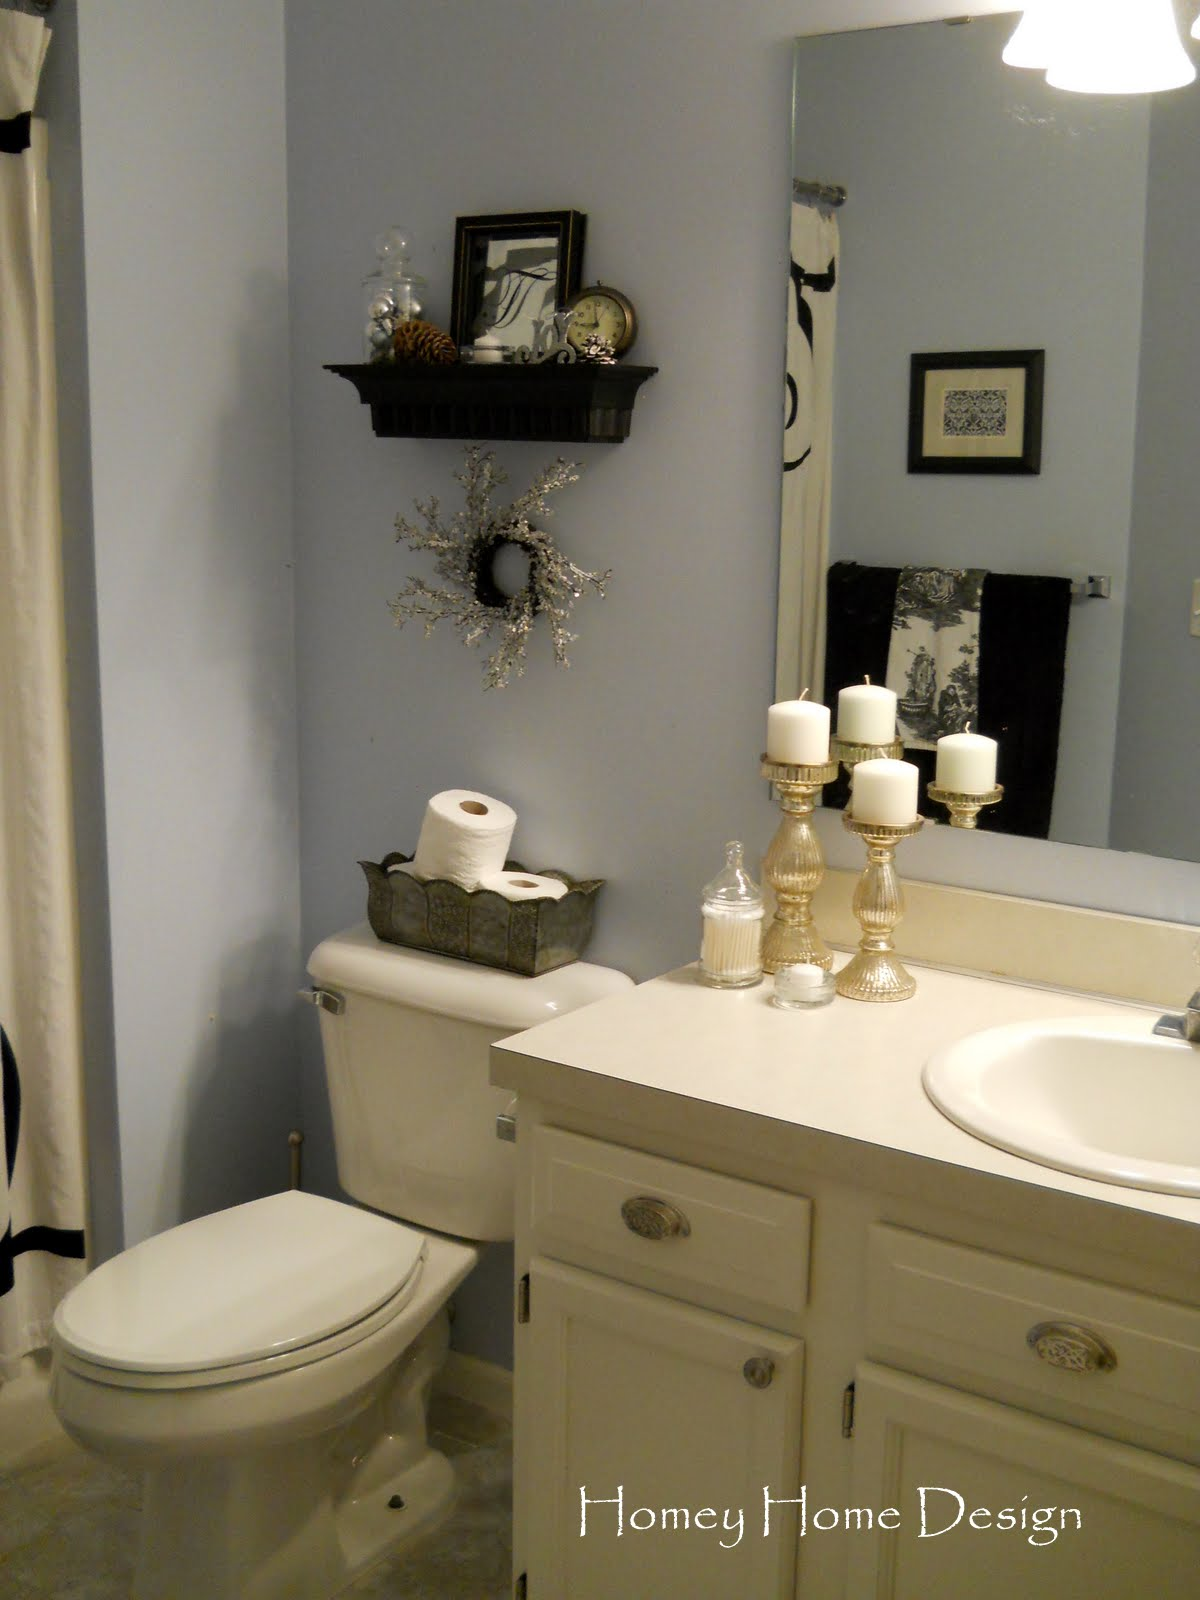 Homey home design christmas in the bathroom for Small bathroom decorating themes